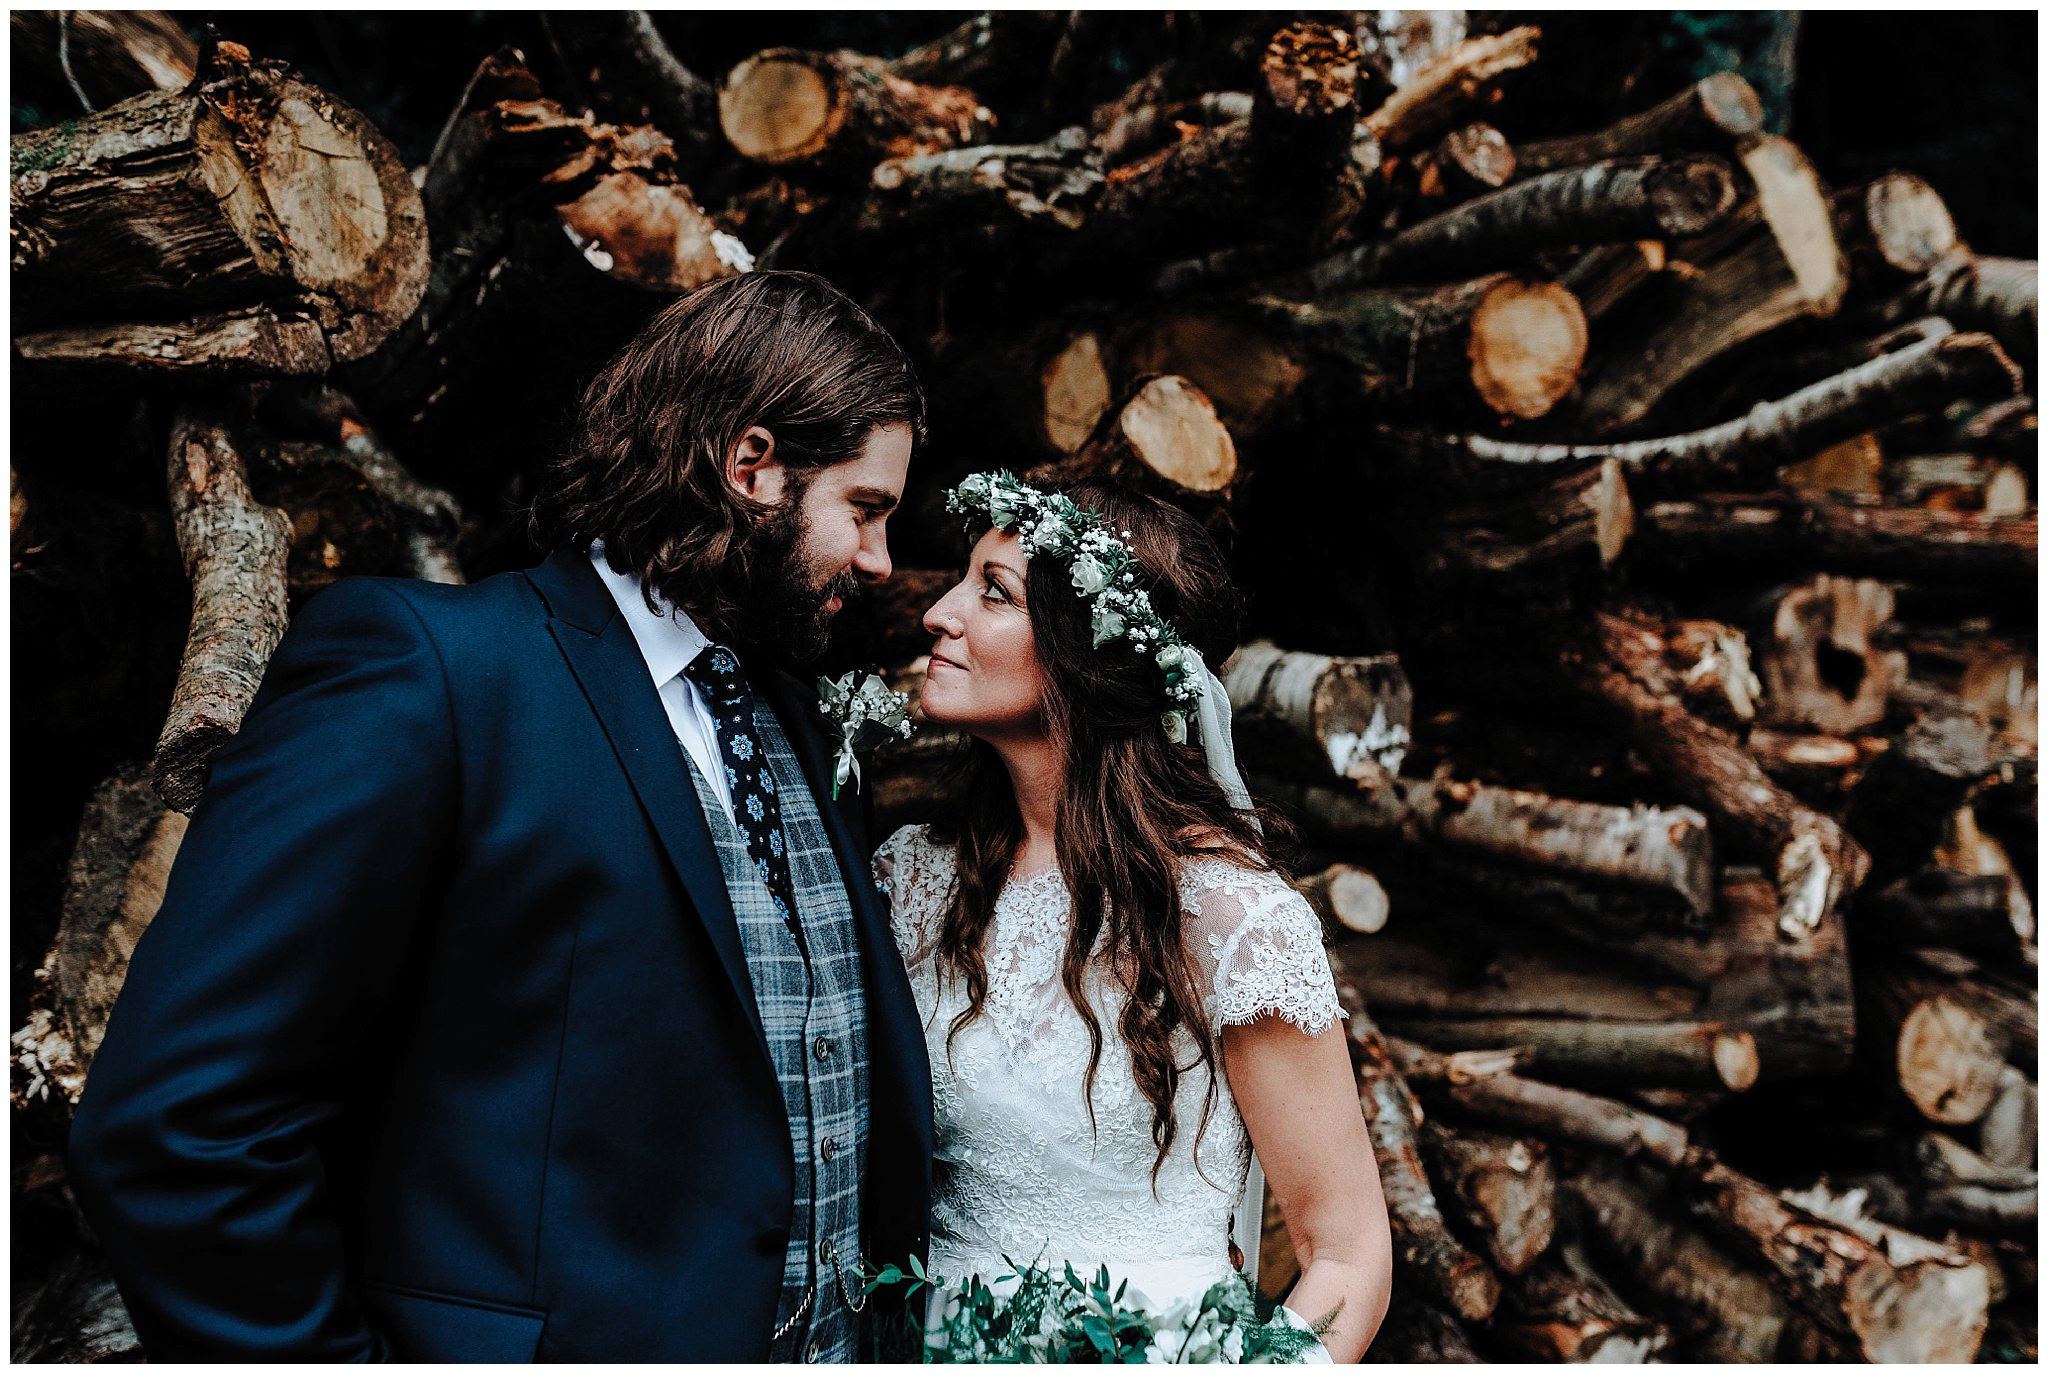 Bride and Groom looking at each other in front of logs